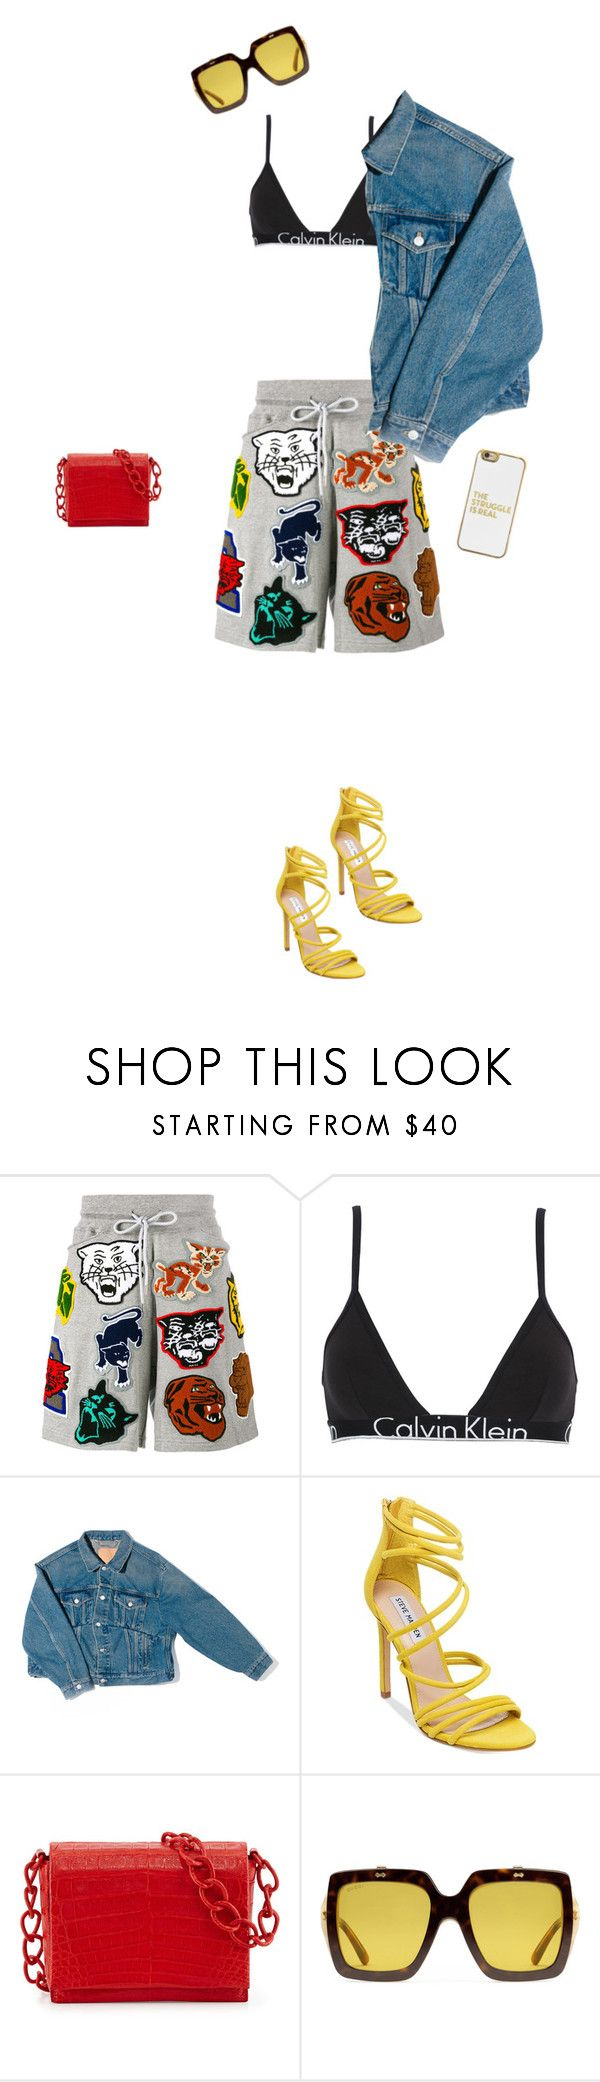 """What's for lunch?"" by elleinadaba ❤ liked on Polyvore featuring Facetasm, Calvin Klein Underwear, Balenciaga, Steve Madden, Nancy Gonzalez, Gucci and BaubleBar"